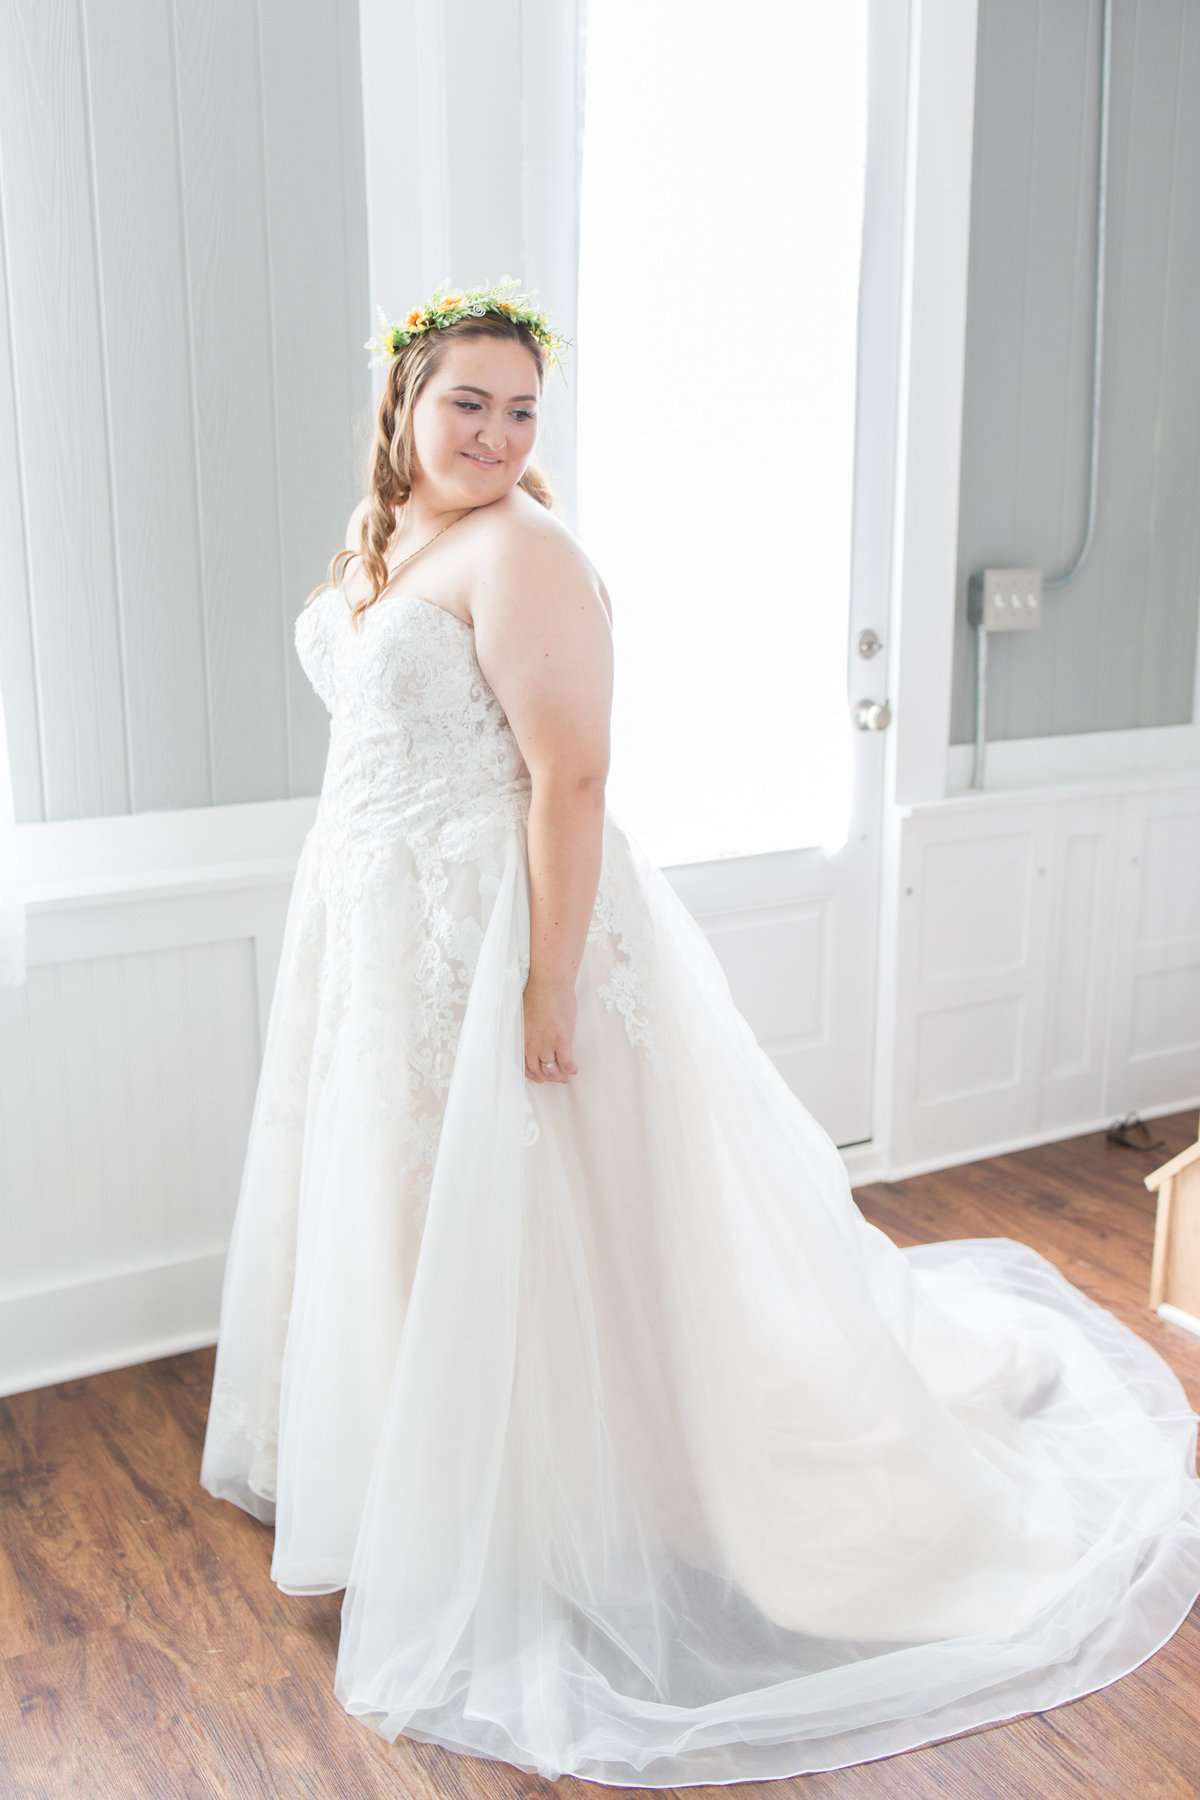 Ohio Wedding Photographer - Best 2019-164